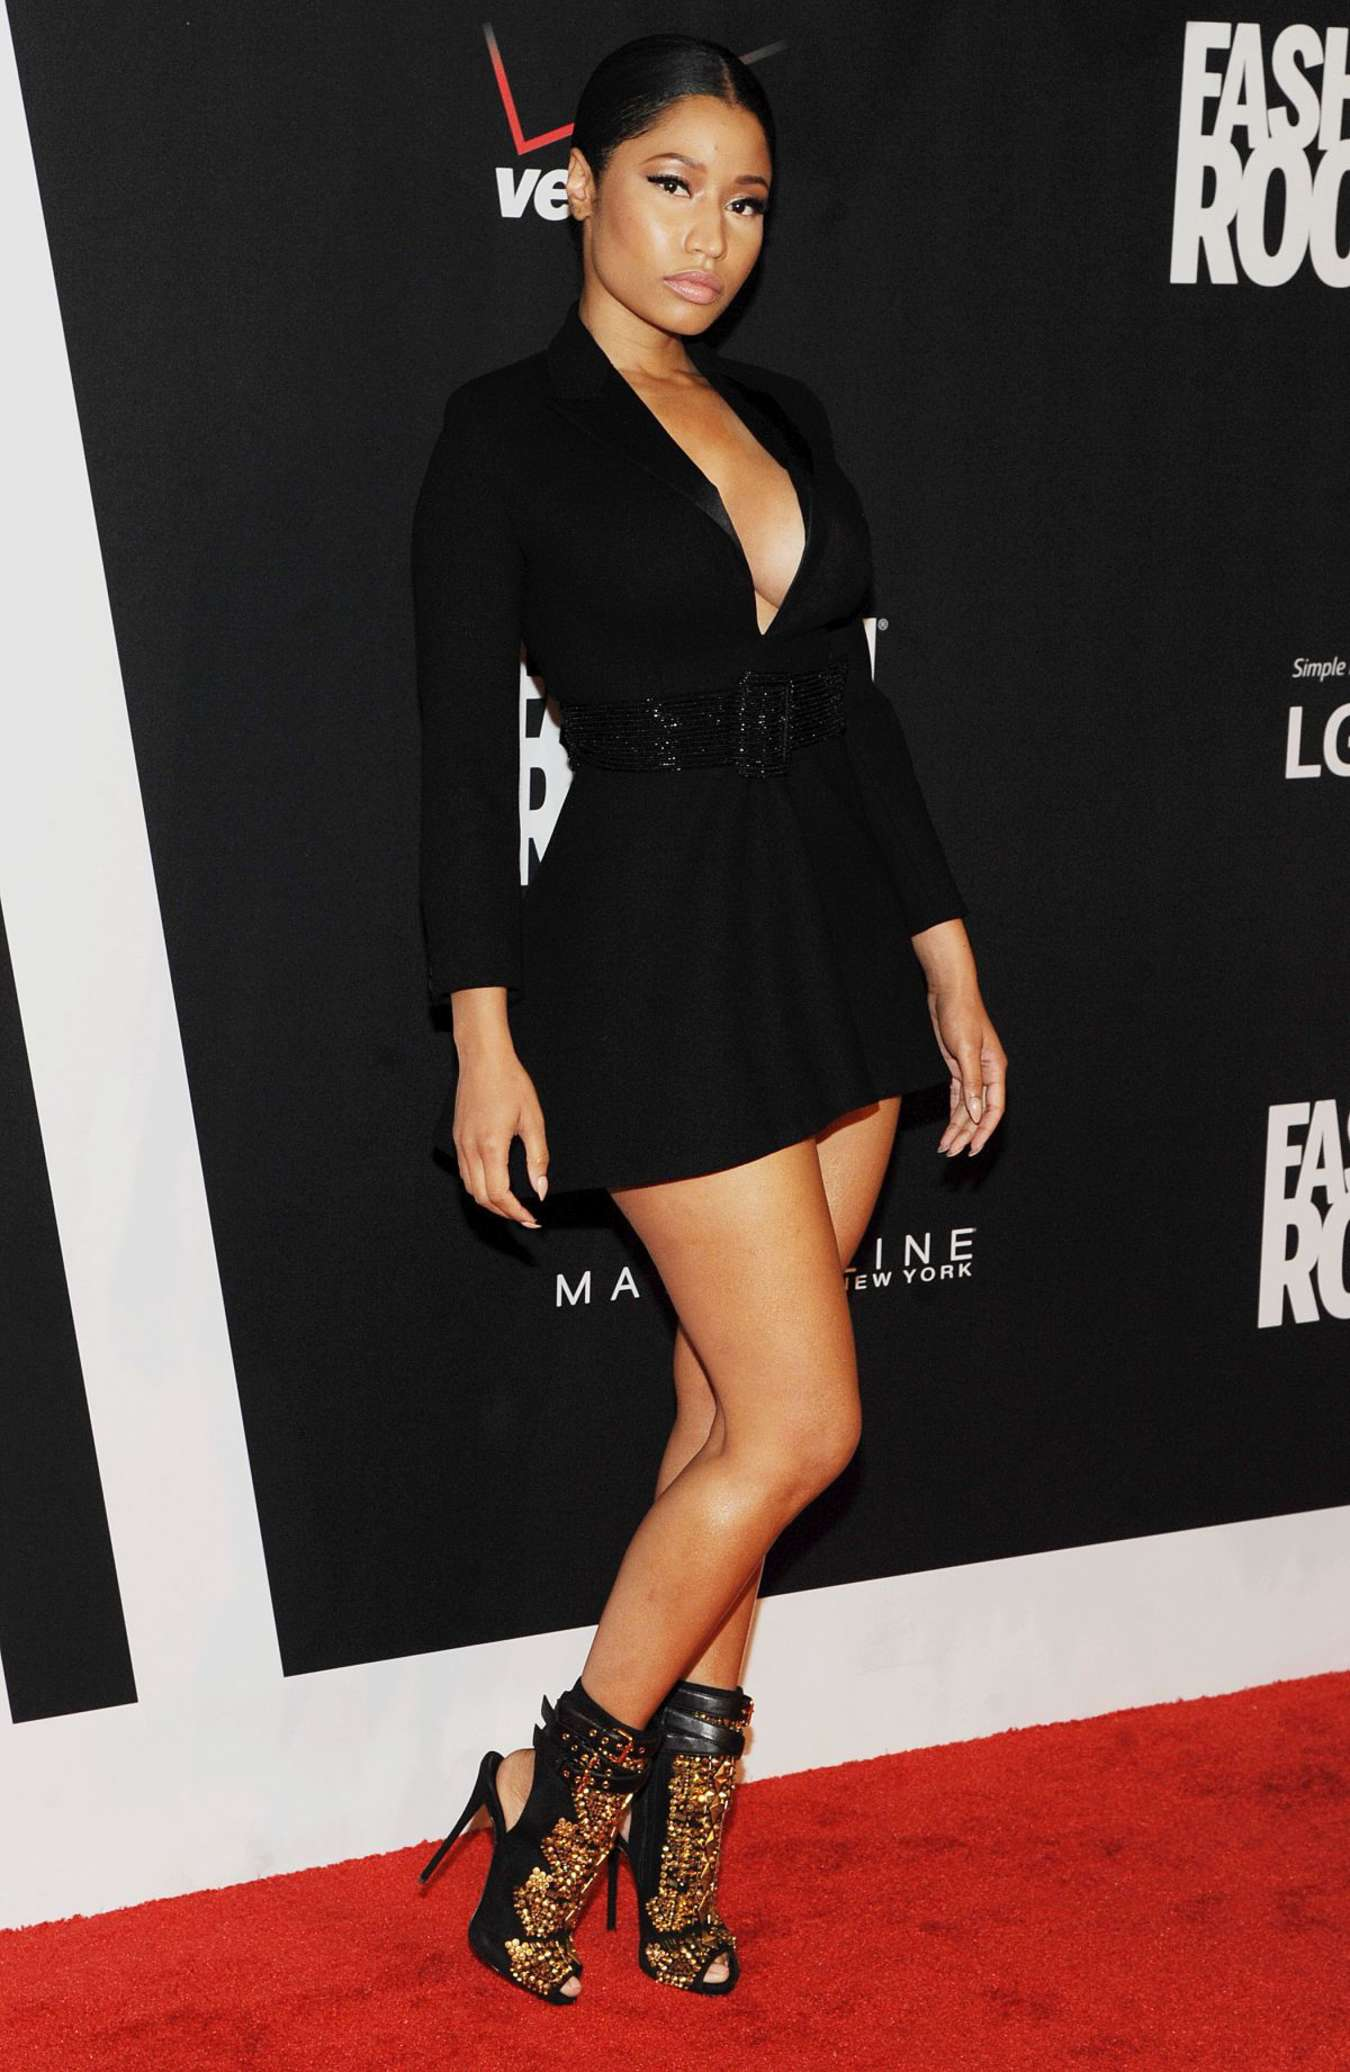 Nicki Minaj Red Carpet At 2014 Fashion Rocks In Ny 12 Gotceleb